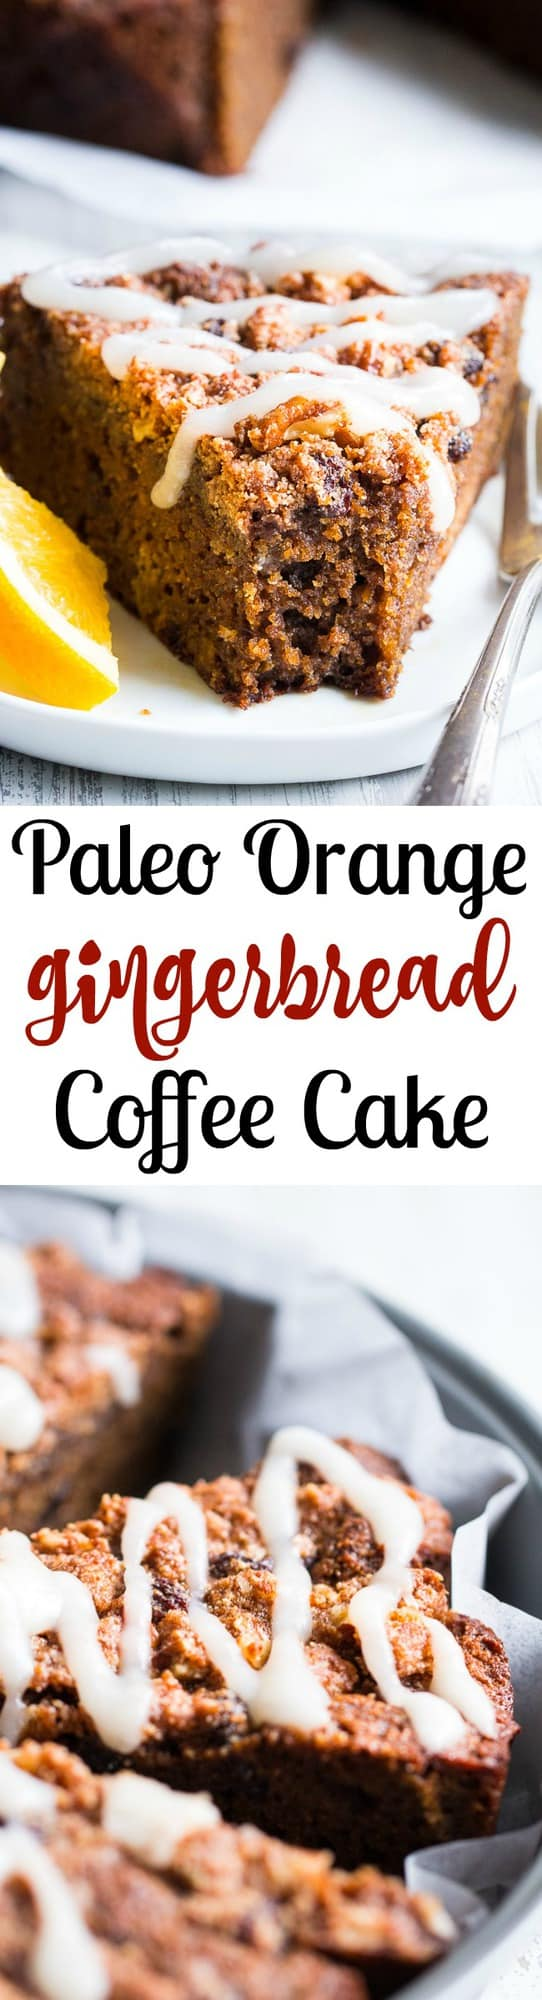 This orange gingerbread coffee cake is perfectly moist, sweet, full of sweet gingerbread spices and orange flavor. It's topped with plenty of sweet cinnamon crumbles and an optional paleo white icing. Perfect to serve for a holiday brunch, dessert, or anytime! Gluten free, paleo, dairy free, refined sugar free.